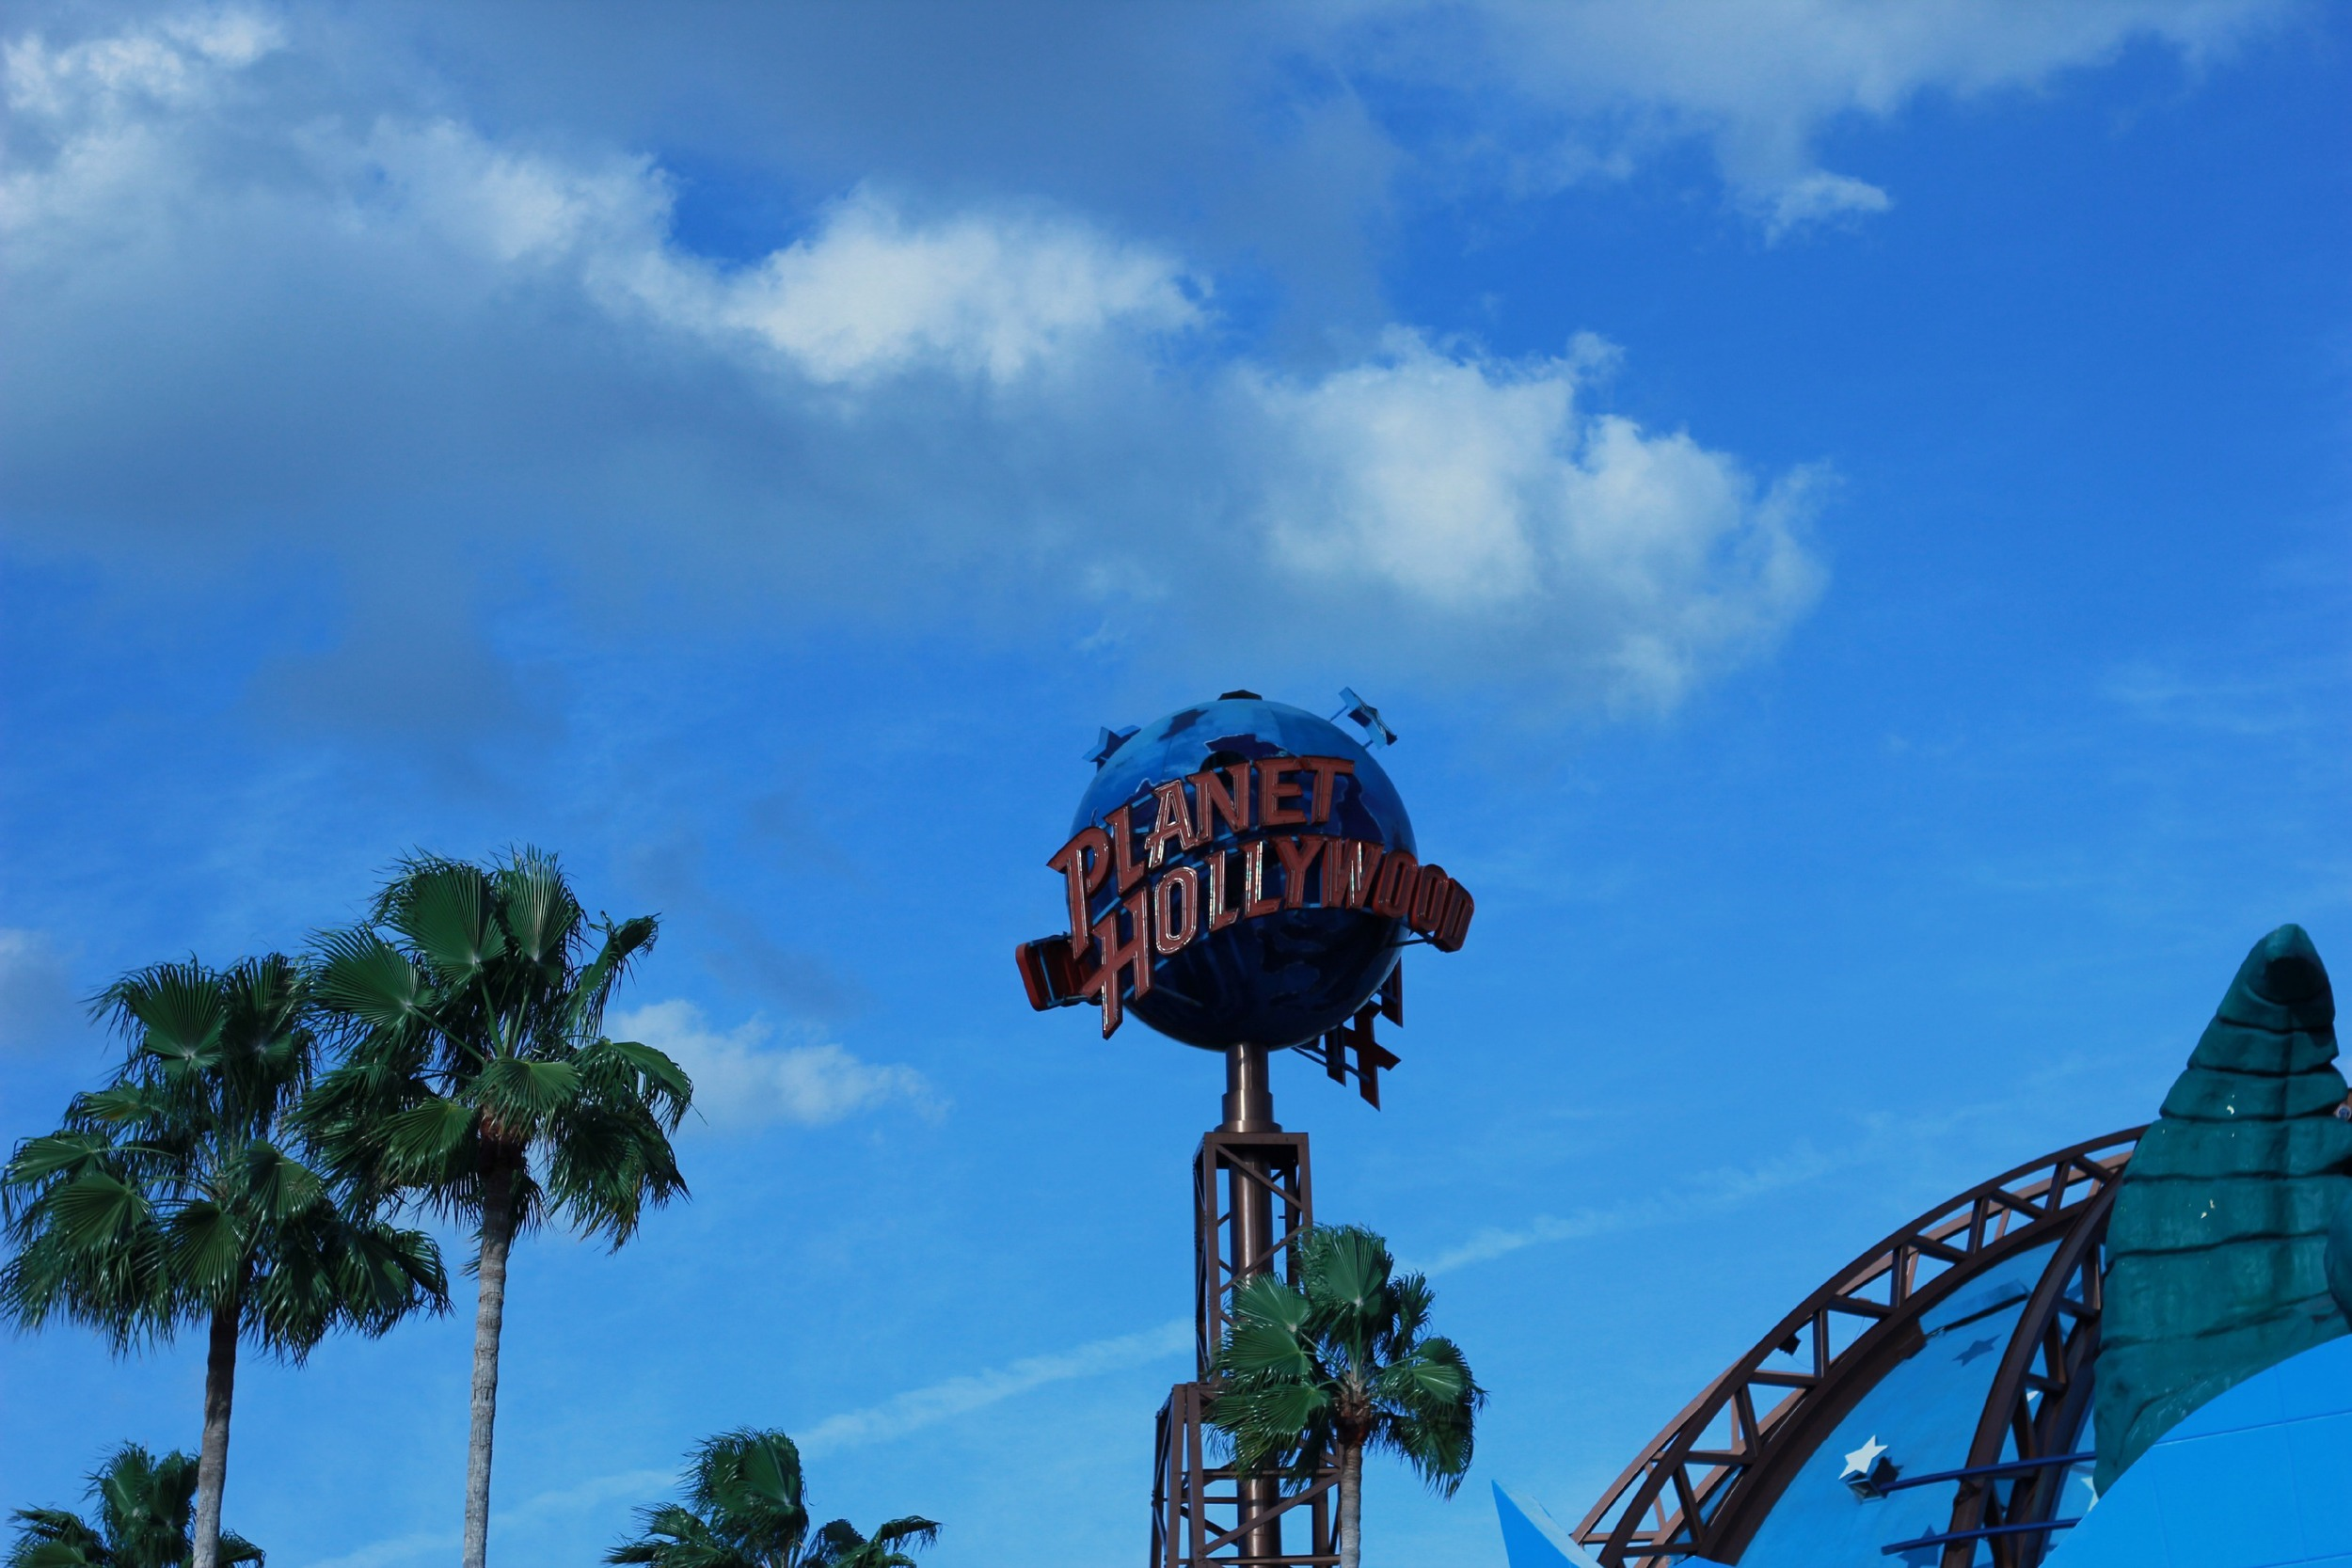 planet-hollywood-disney